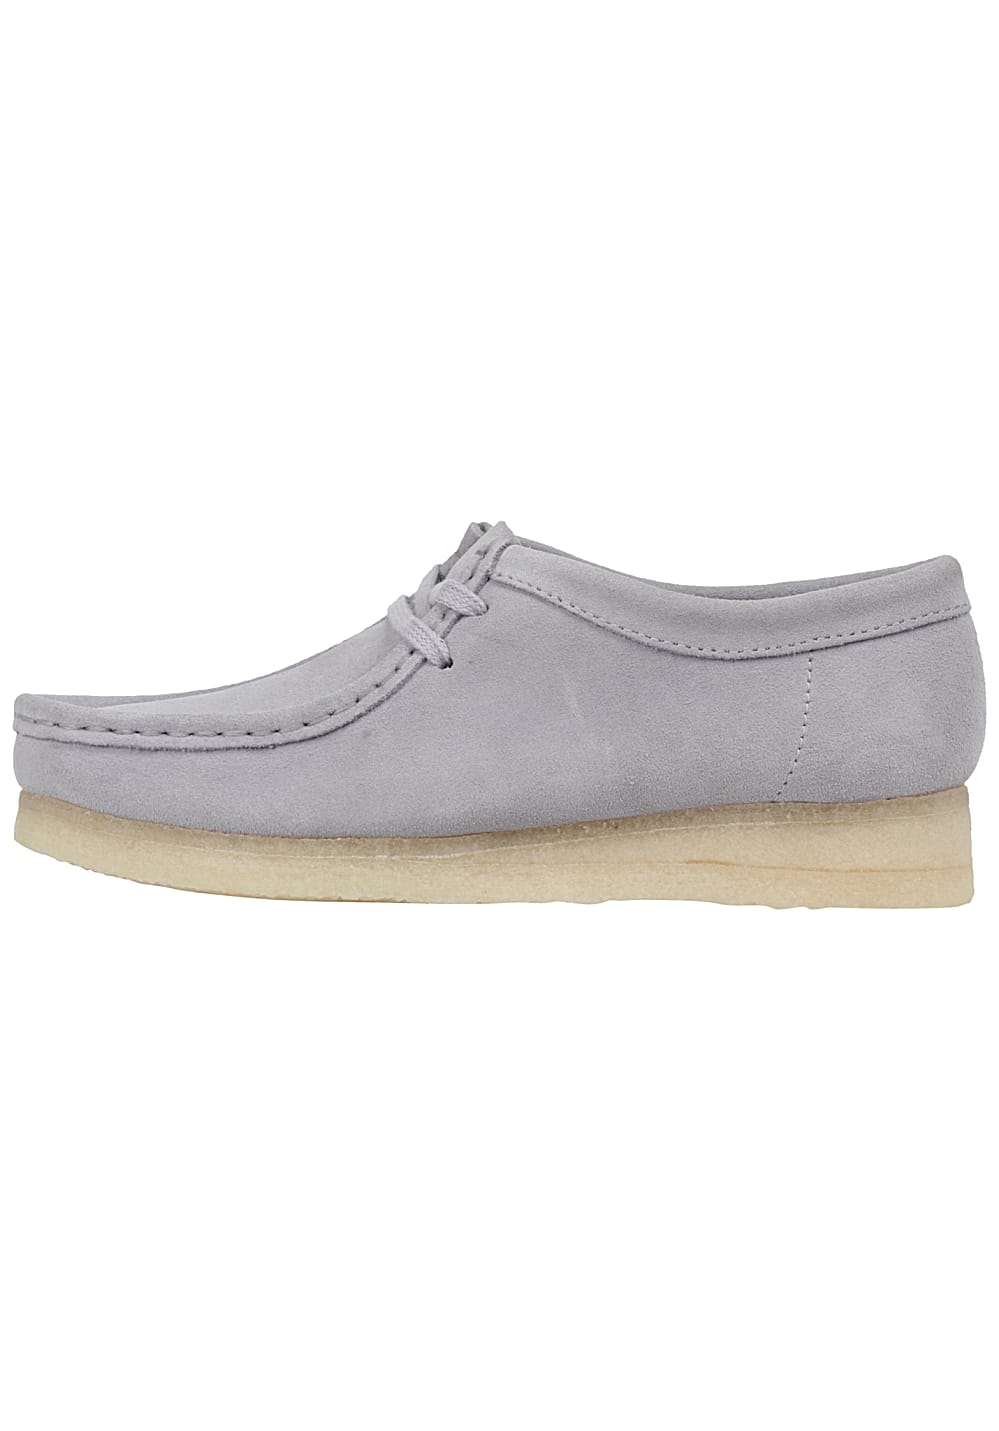 CLARKS ORIGINALS Wallabee Fashion Schuhe für Damen Blau